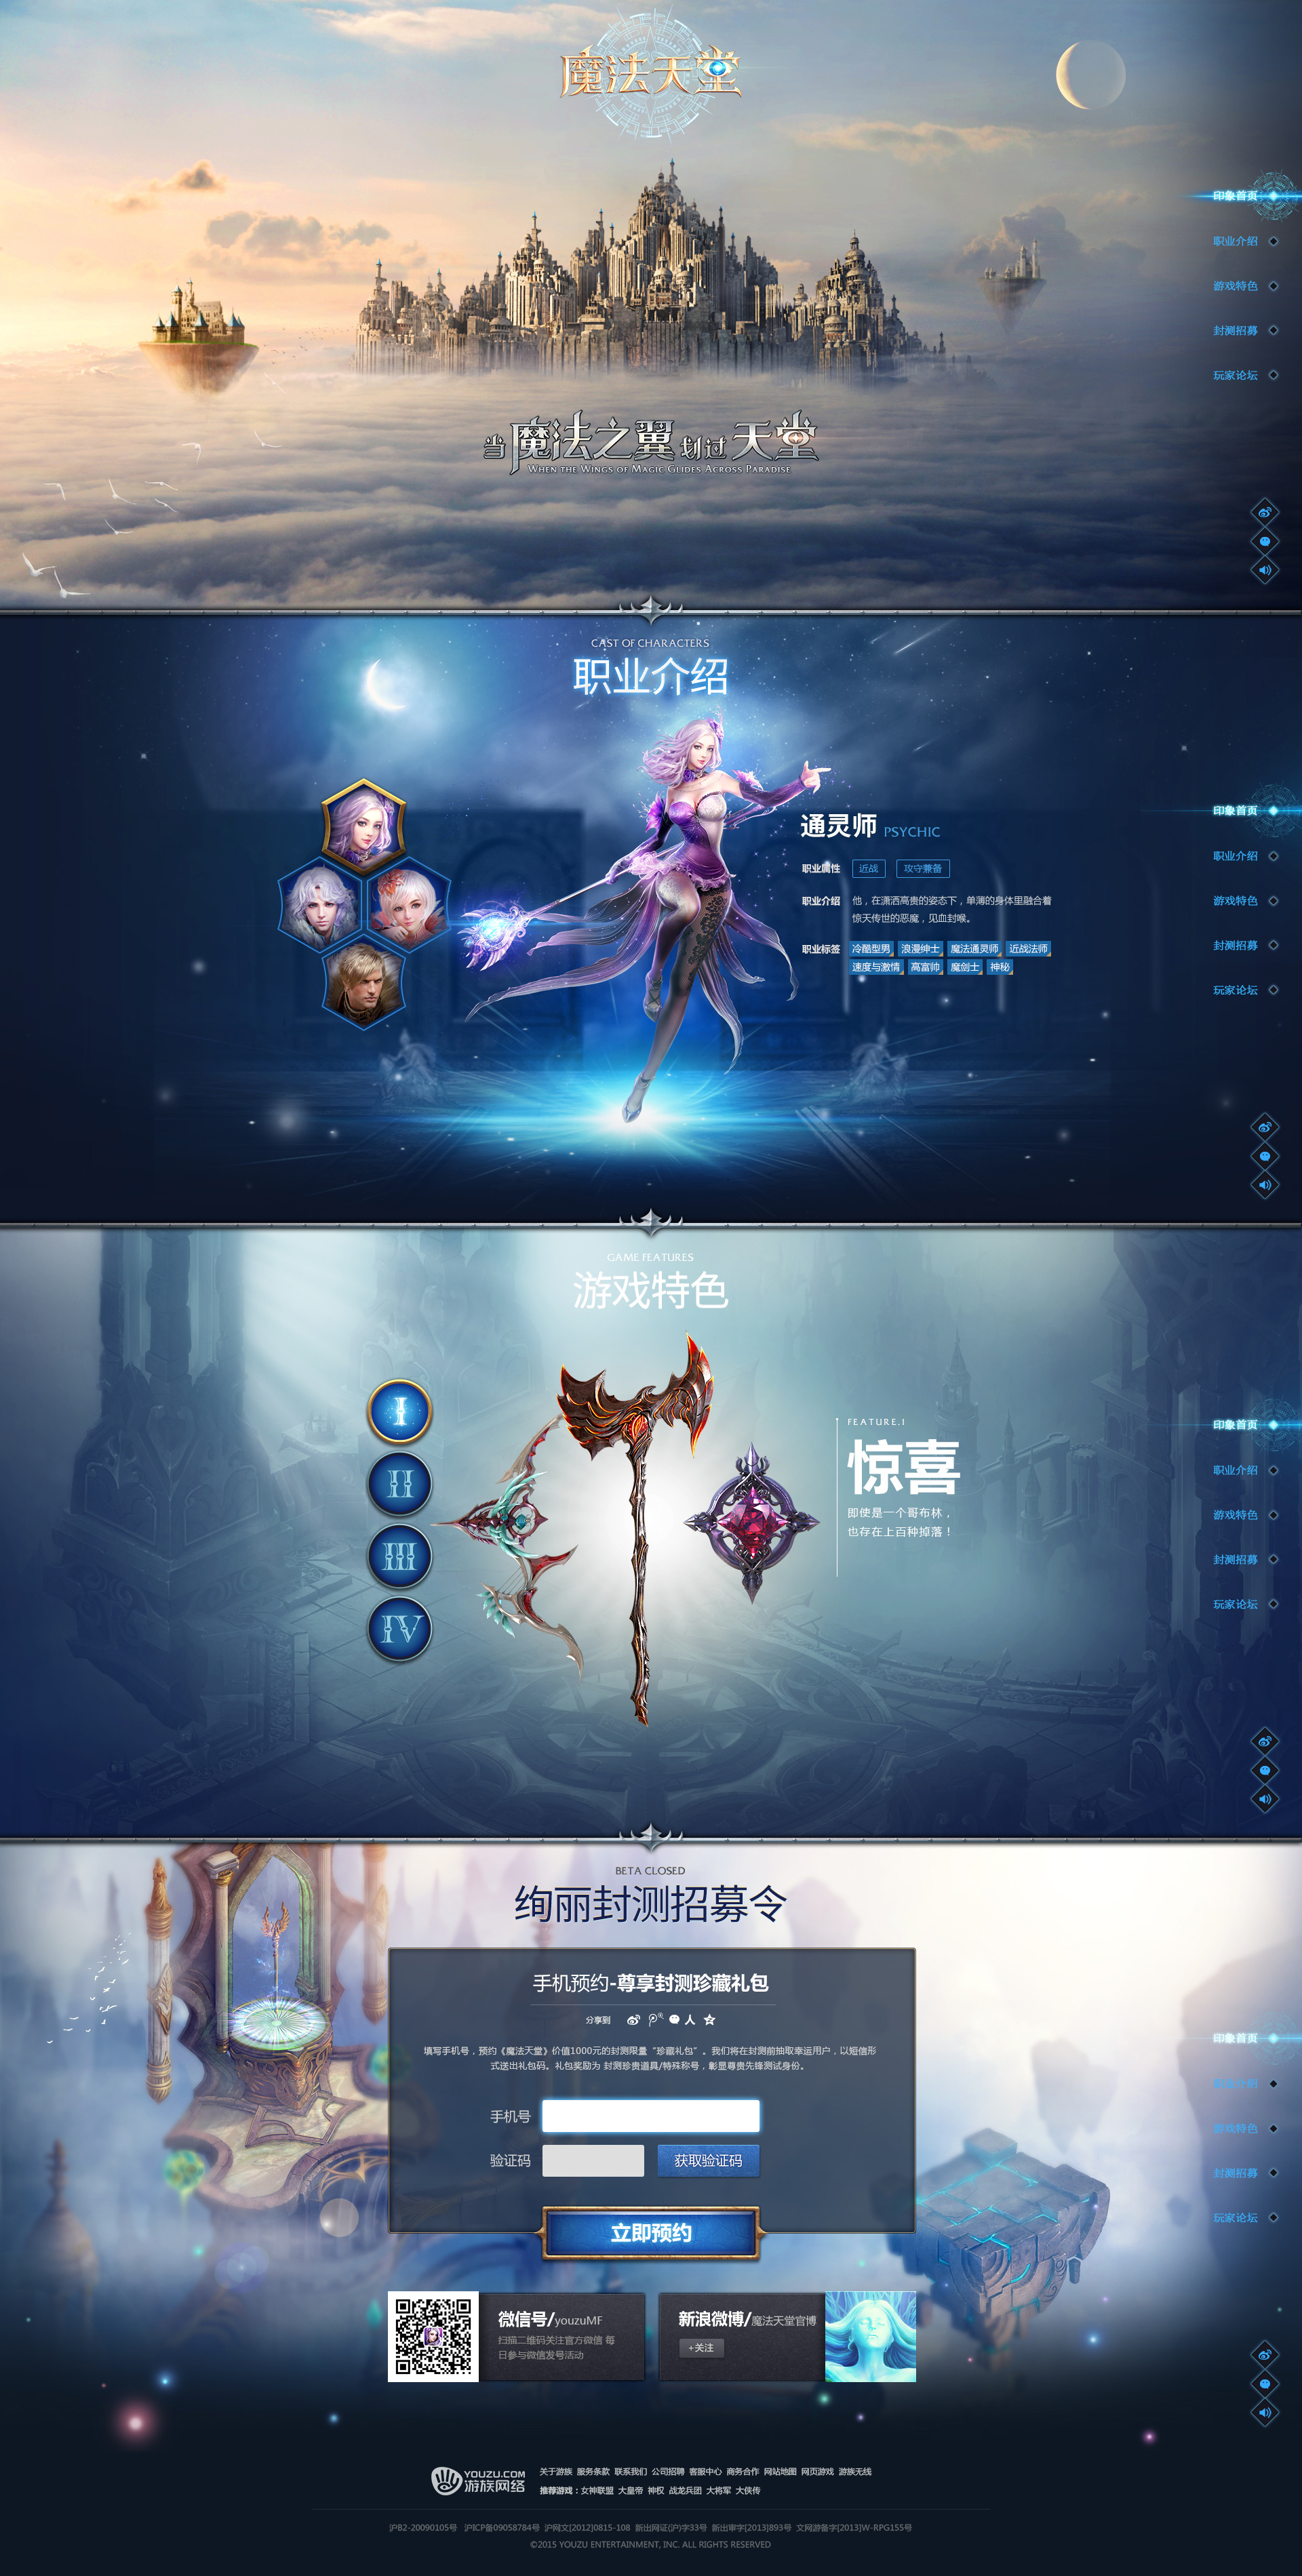 A Game website Review by onejian